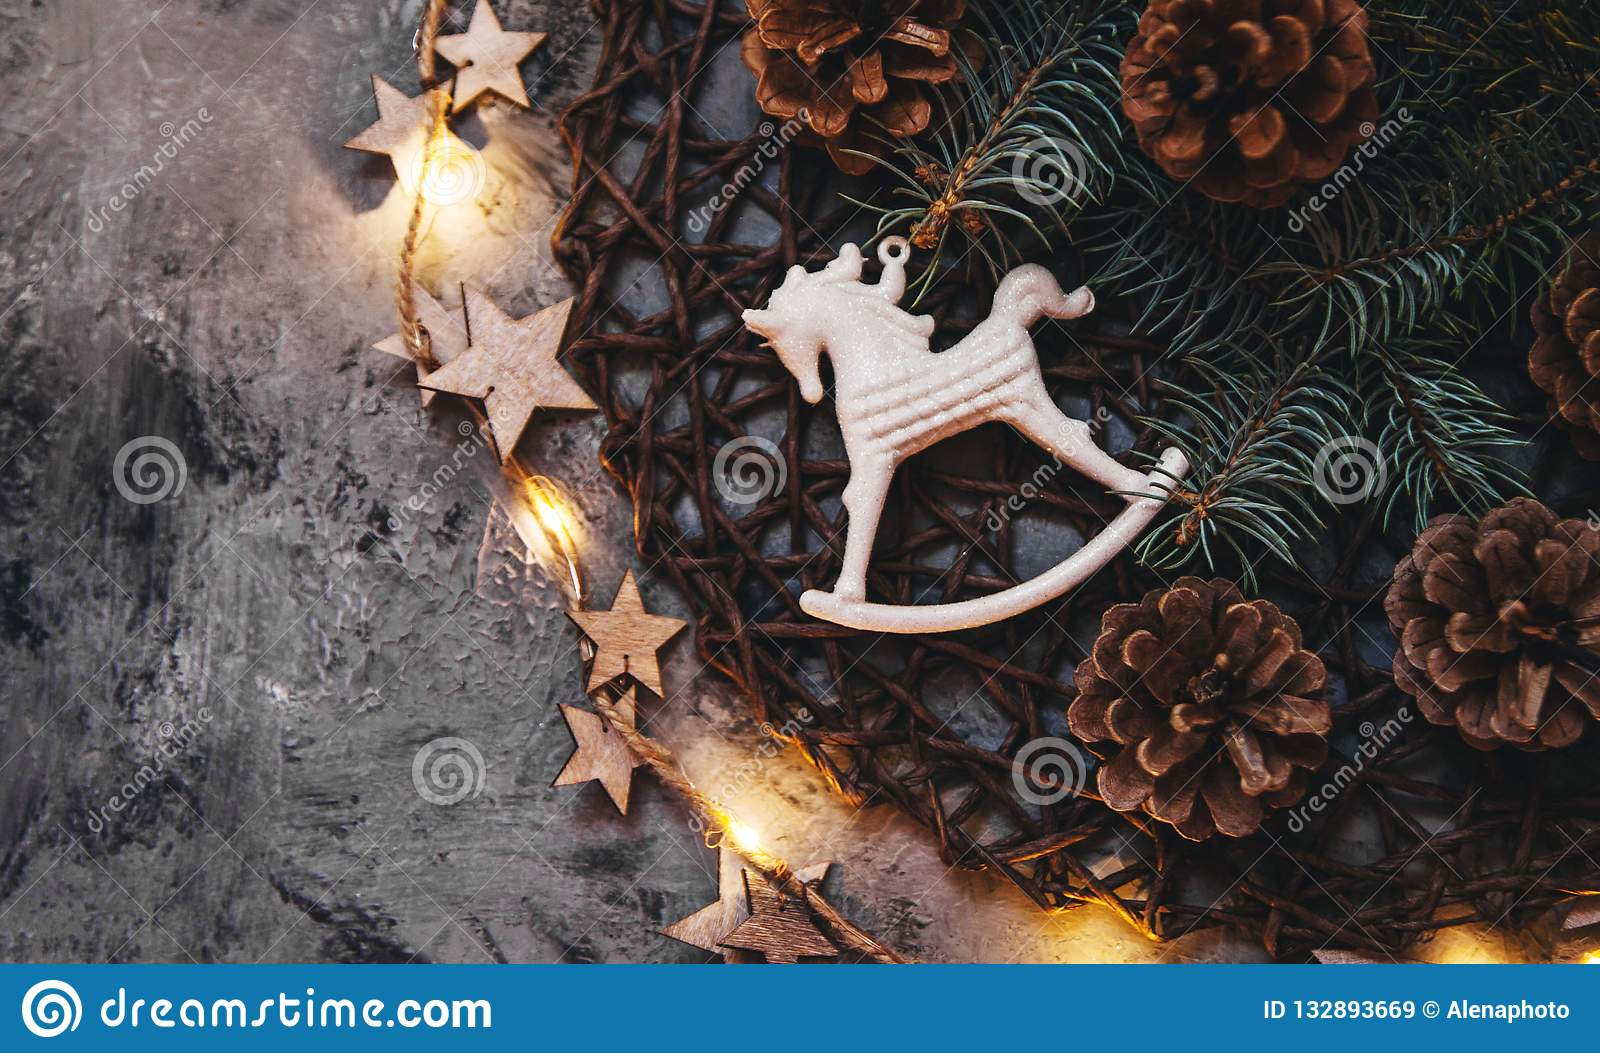 White Horse Toy With Christmas Decorations Stock Image Image Of Gift Decor 132893669